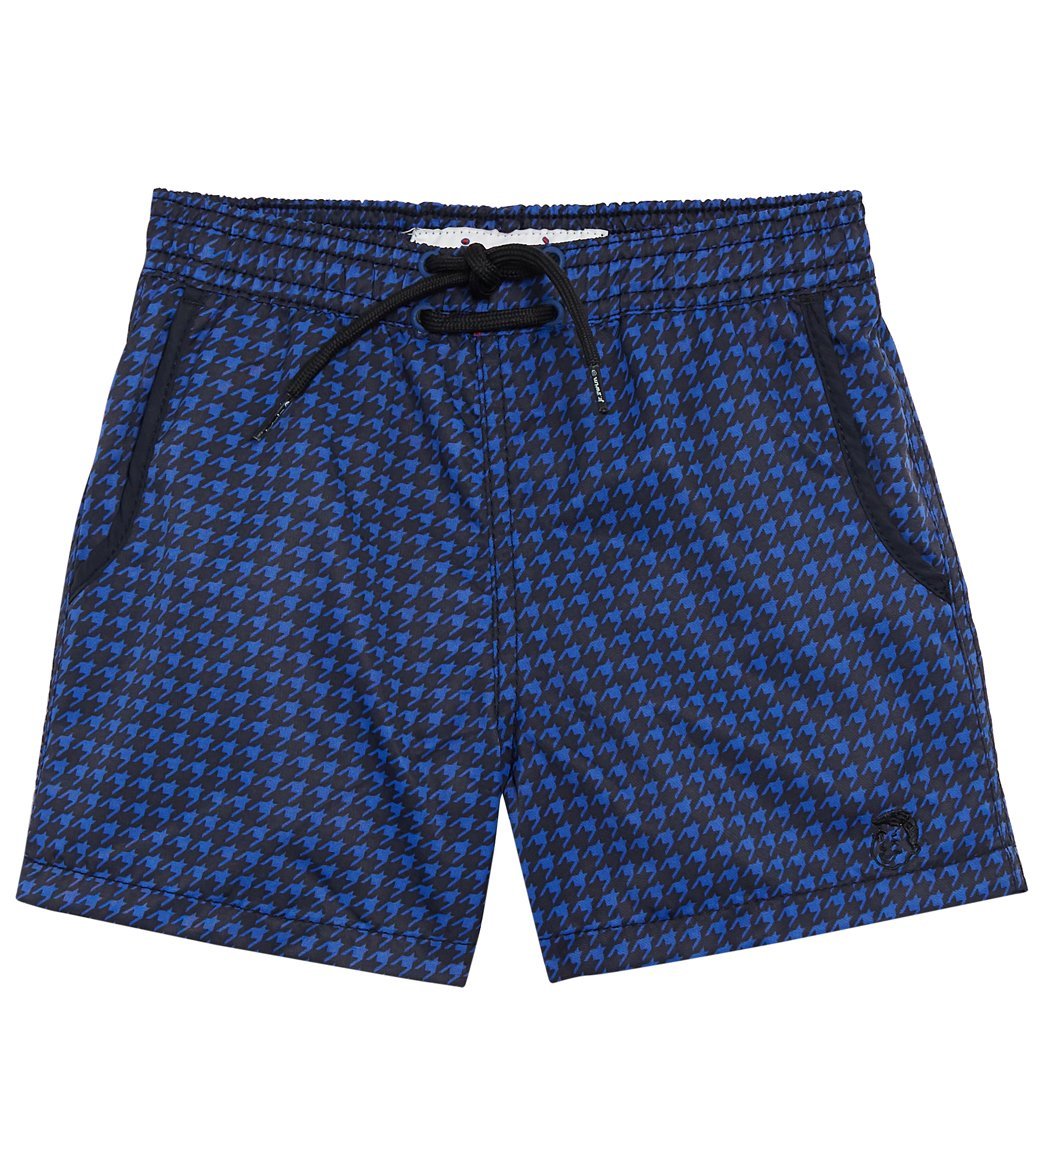 c5eb102406 Mr.Swim Boys' Houndstooth Swim Trunk (Toddler, Little Kid, Big Kid ...